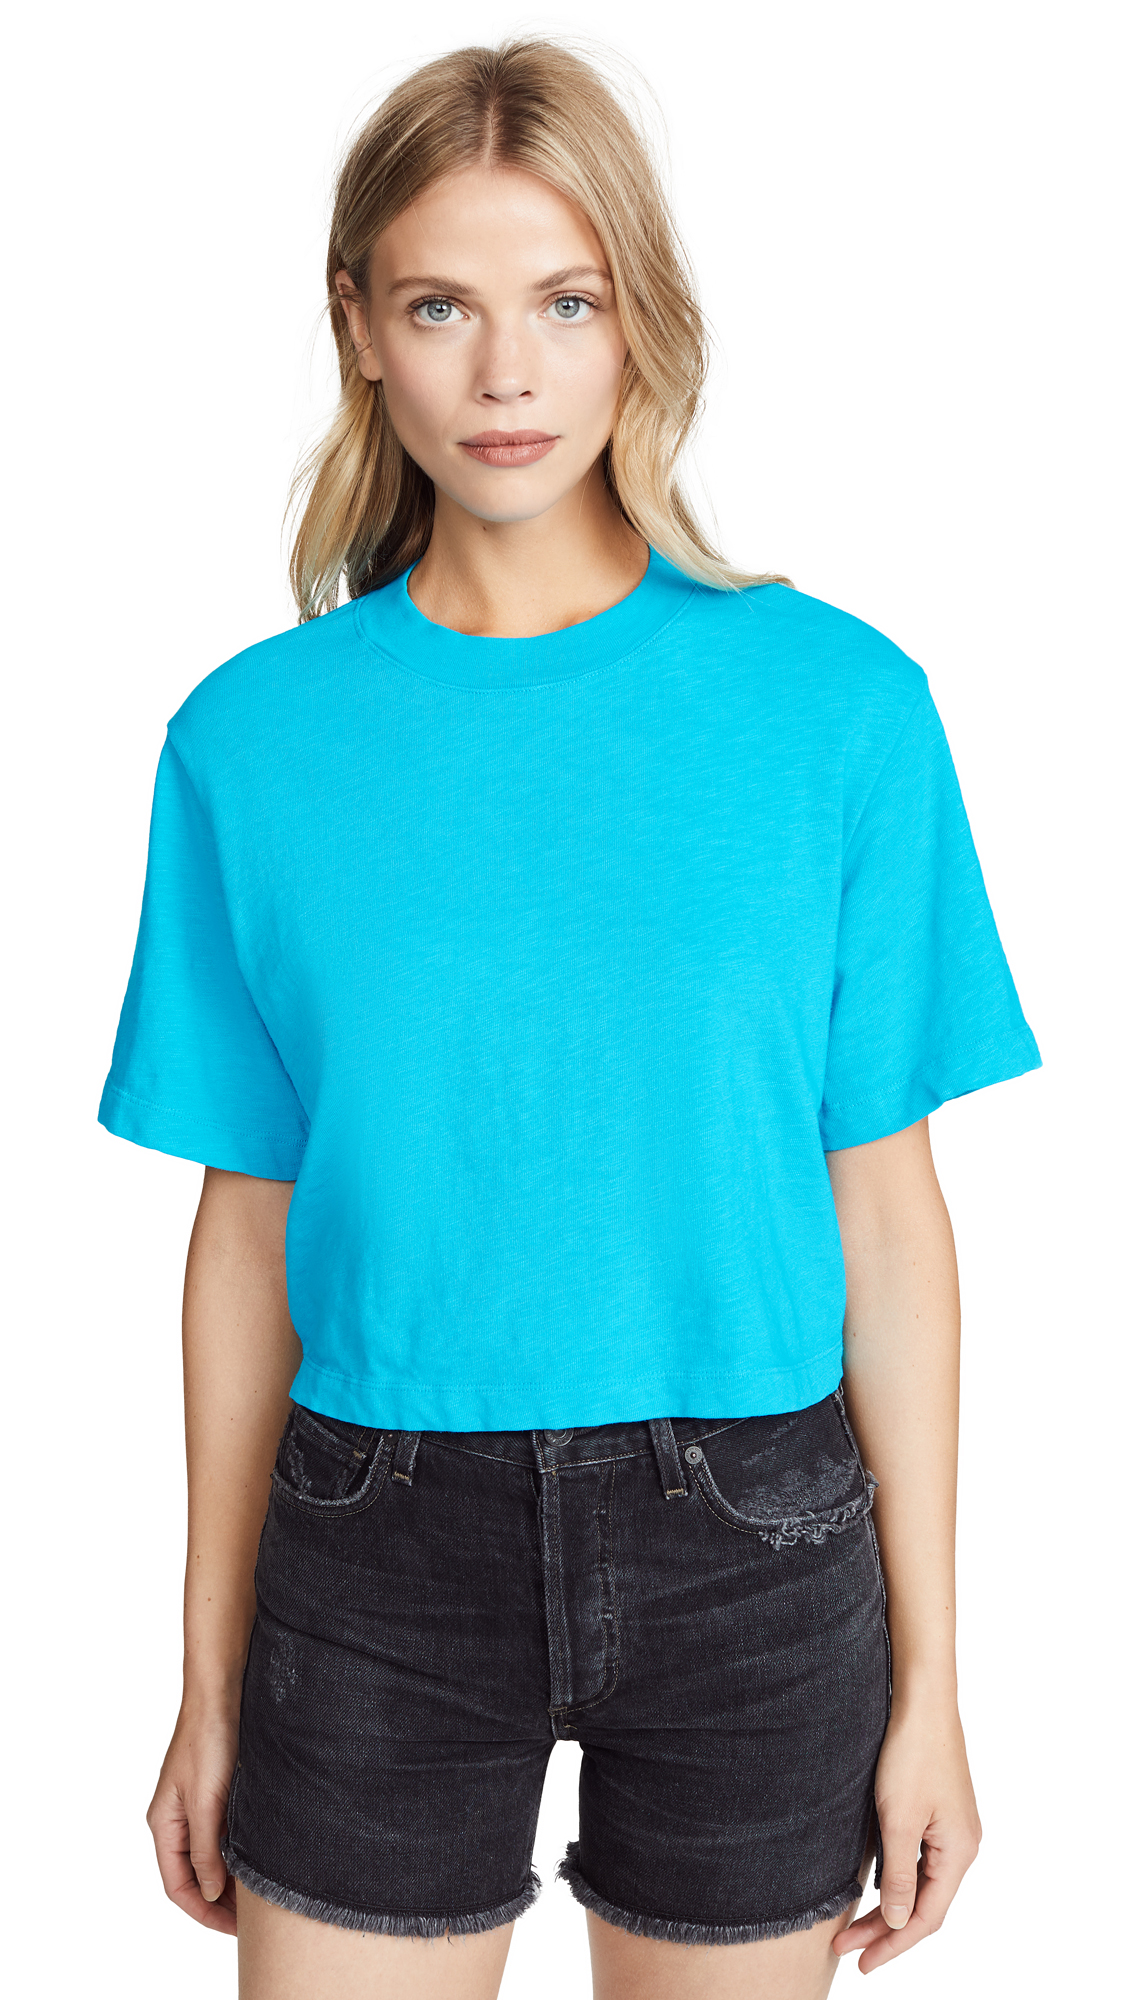 THE TOKYO CROPPED TEE